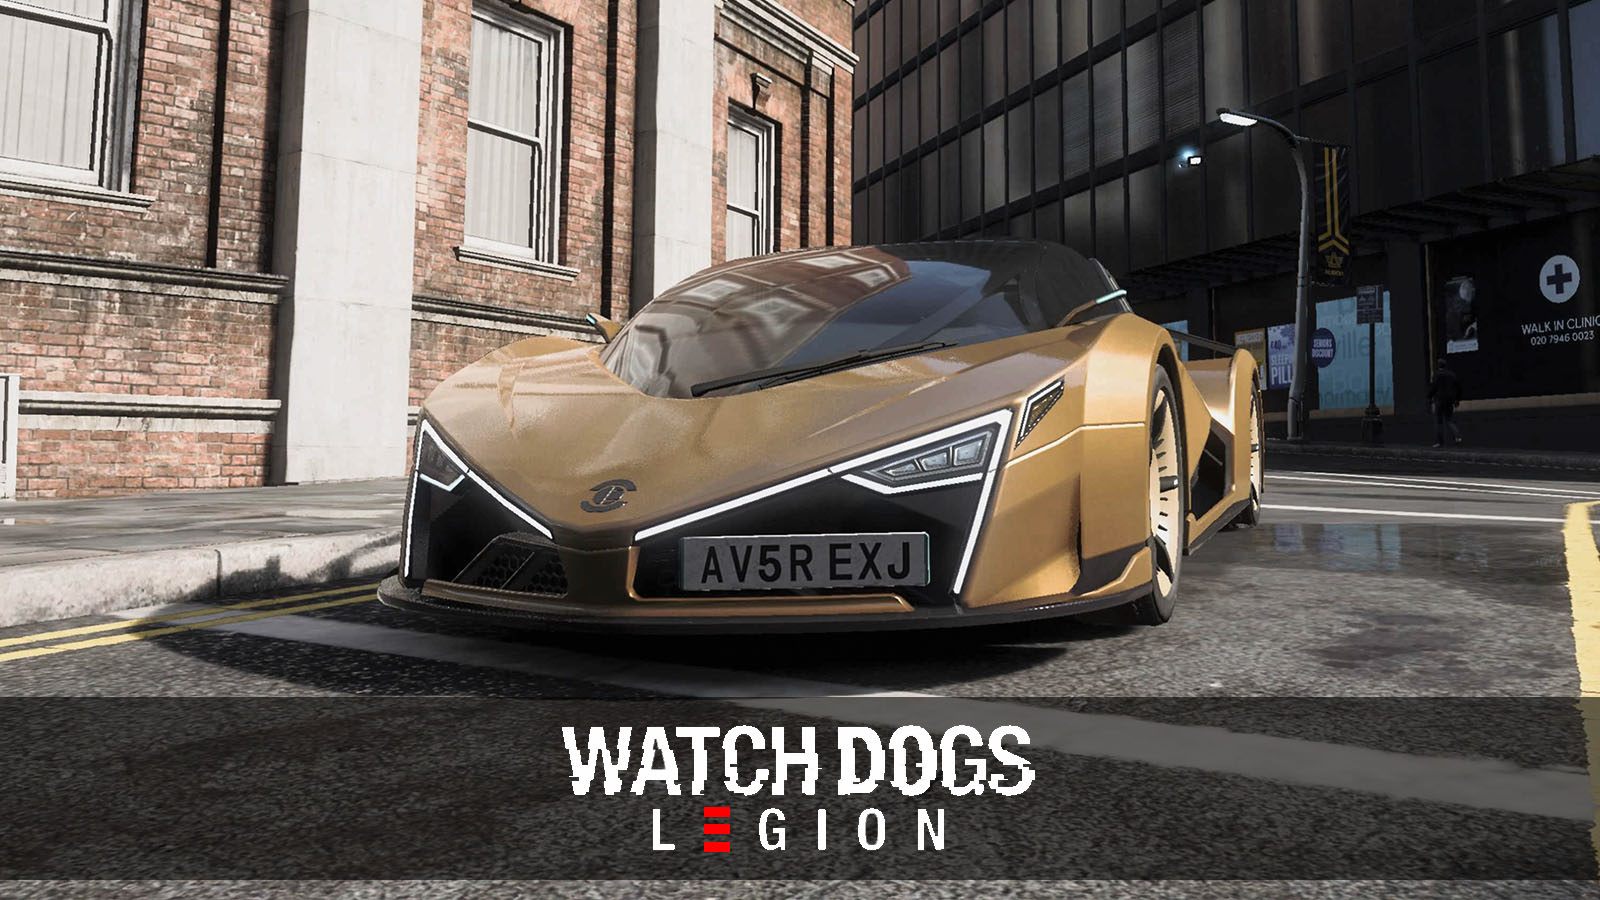 Watch Dogs car guide